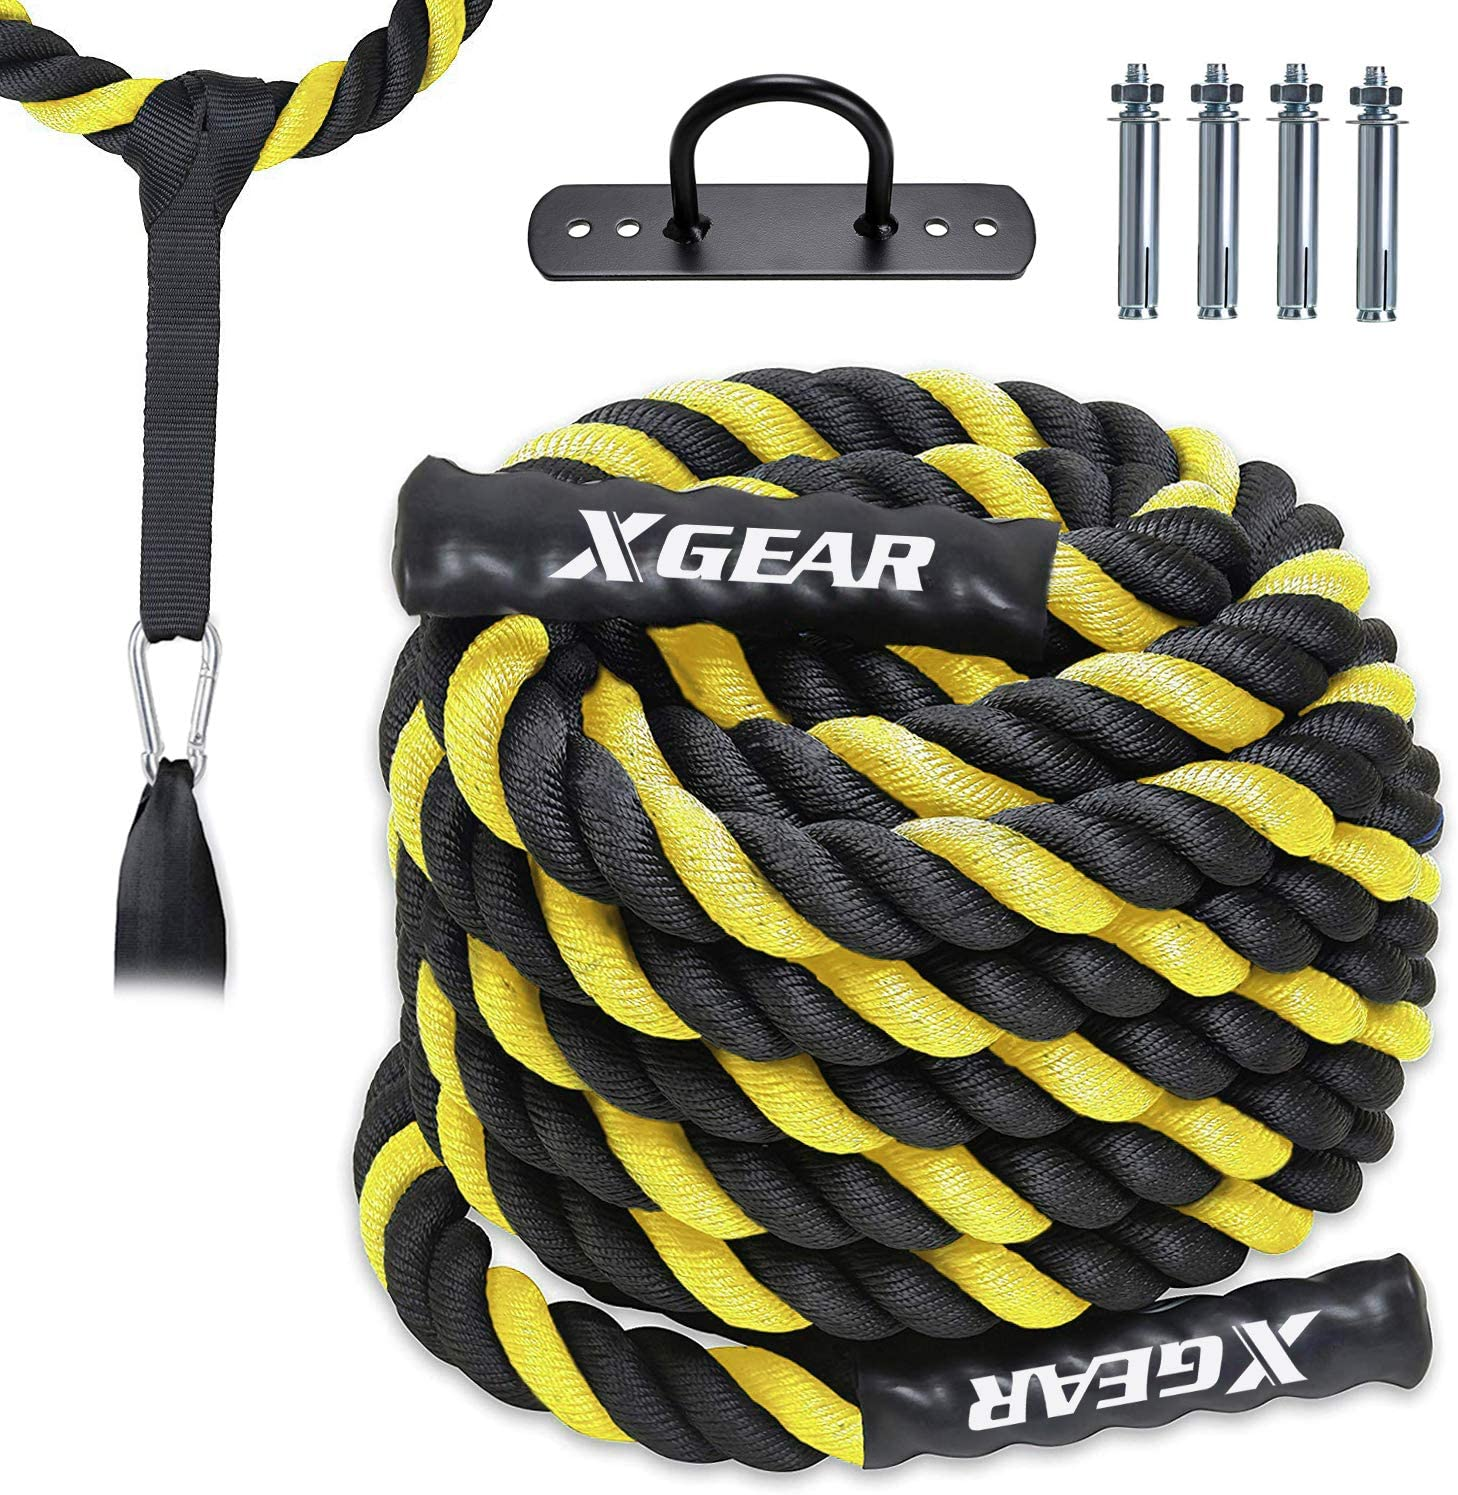 XGEAR Heavy Battle Rope with Upgraded Polyester Cover,Anchor Strap Kit Included – High Tensile Strength Poly Dacron Training Rope – Available in 1.5 Dia, 30 40 50ft.